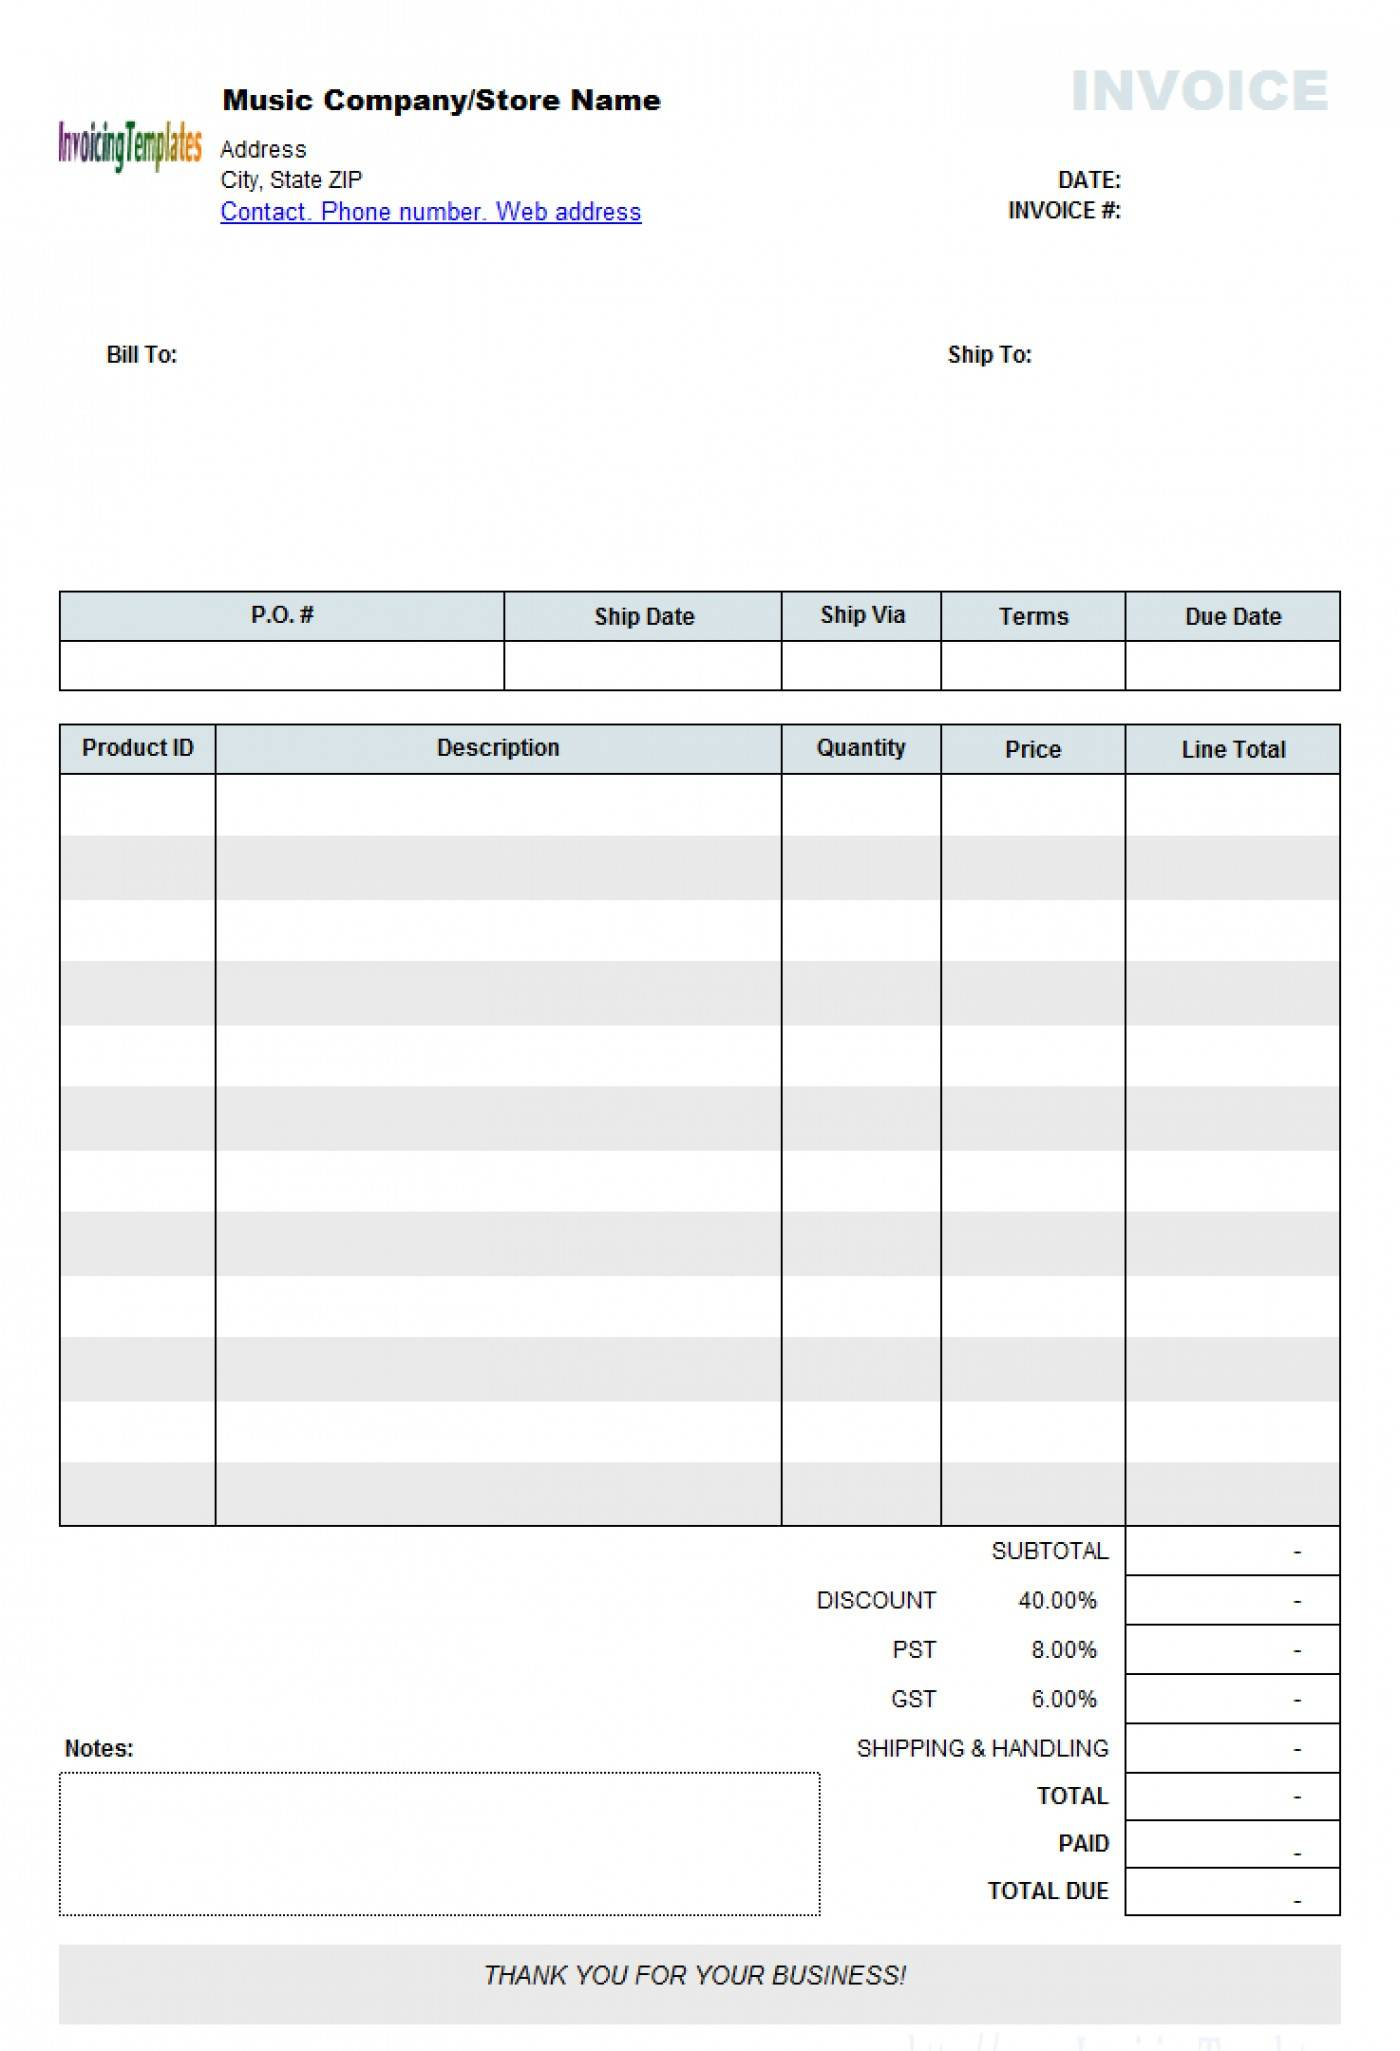 Microsoft Word Invoice Templates For Mac